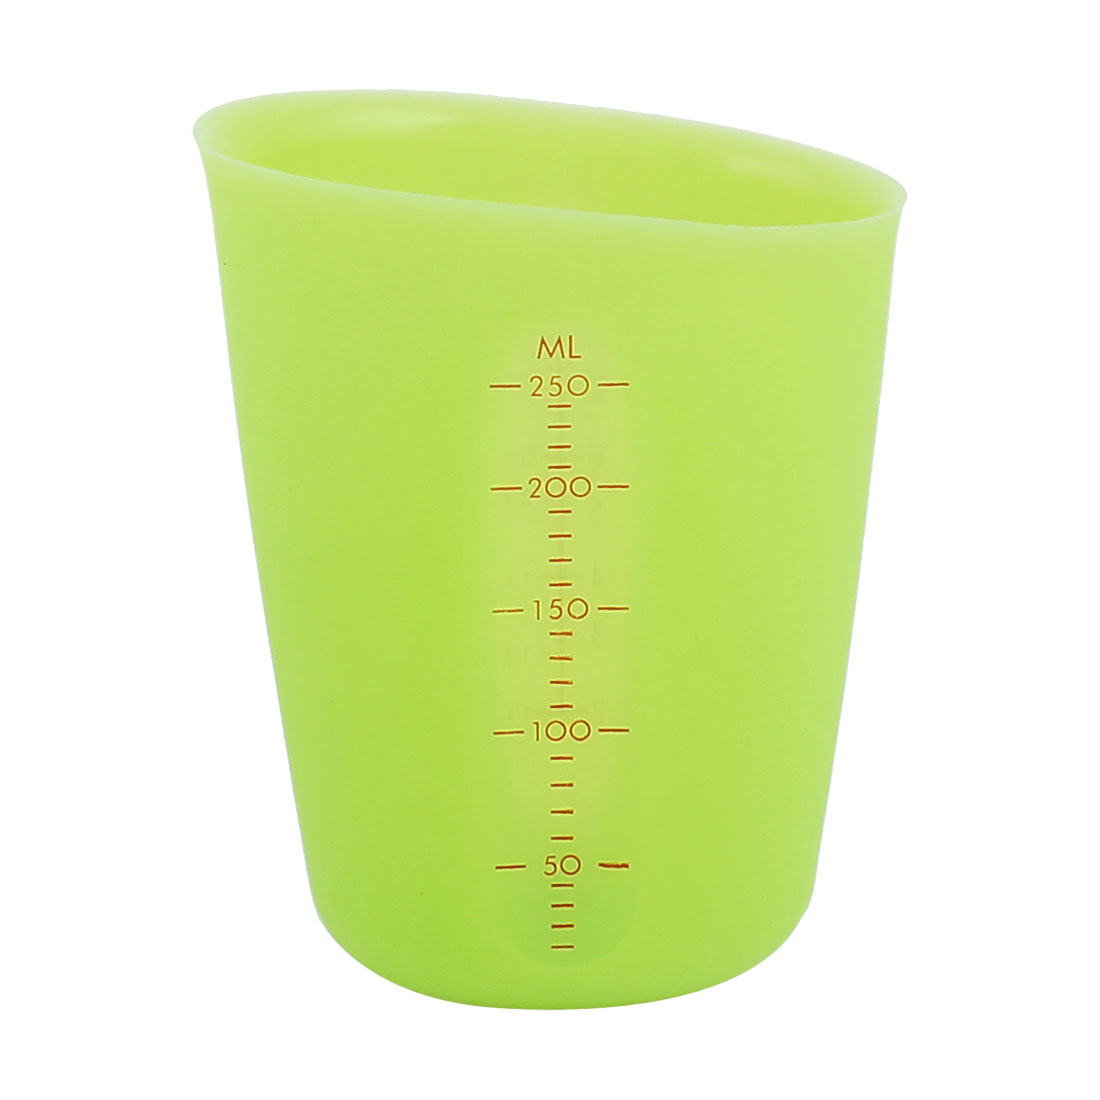 250ml Capacity Silicone Food Liquid Kitchen Household Measuring Cup Green by Unique-Bargains